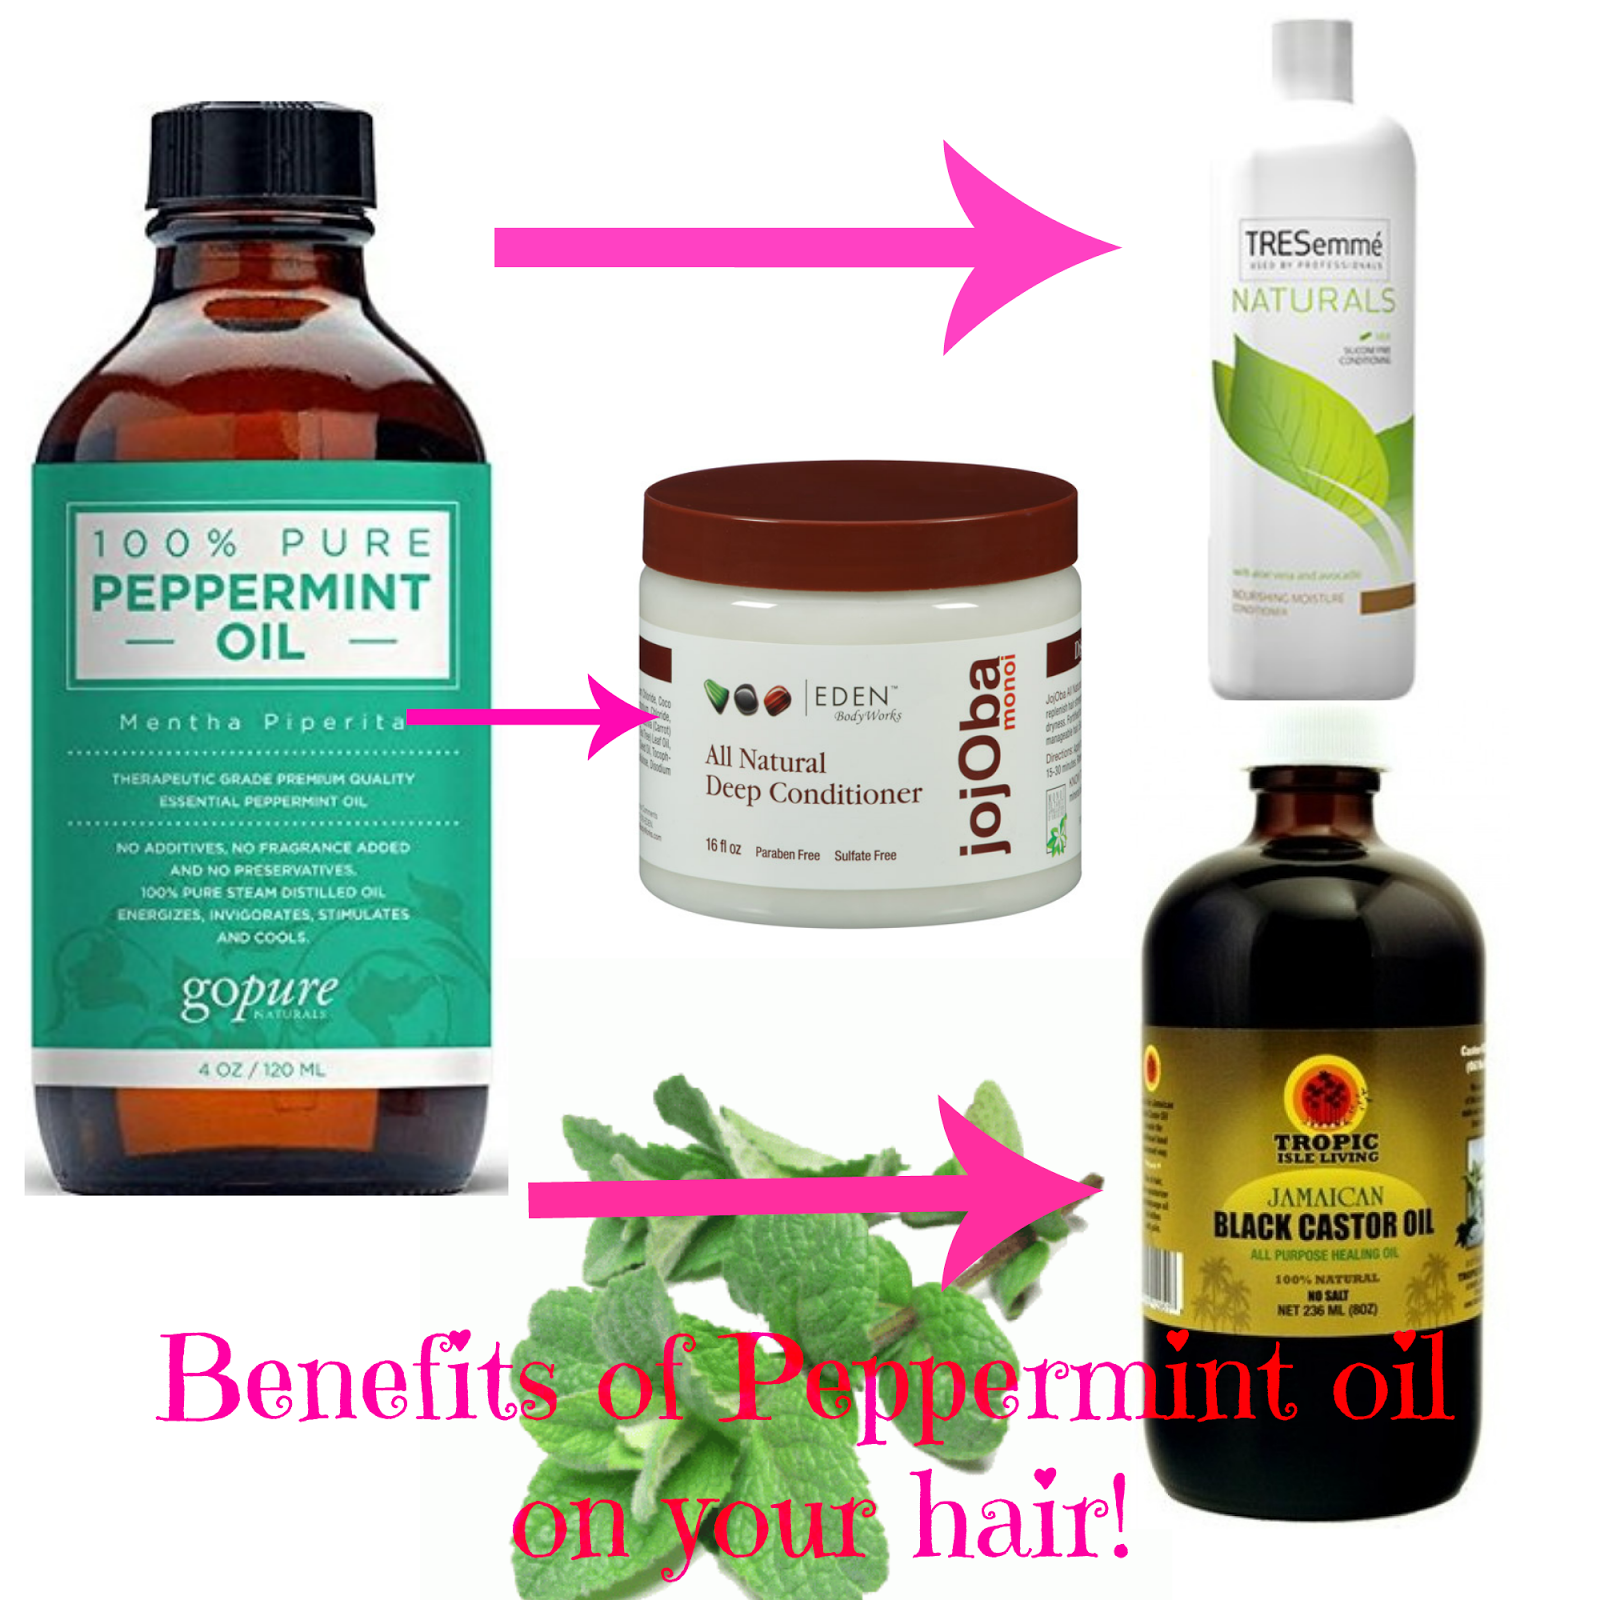 http://www.chicfromhair2toe.com/2015/03/the-benefits-of-using-peppermint-oil.html